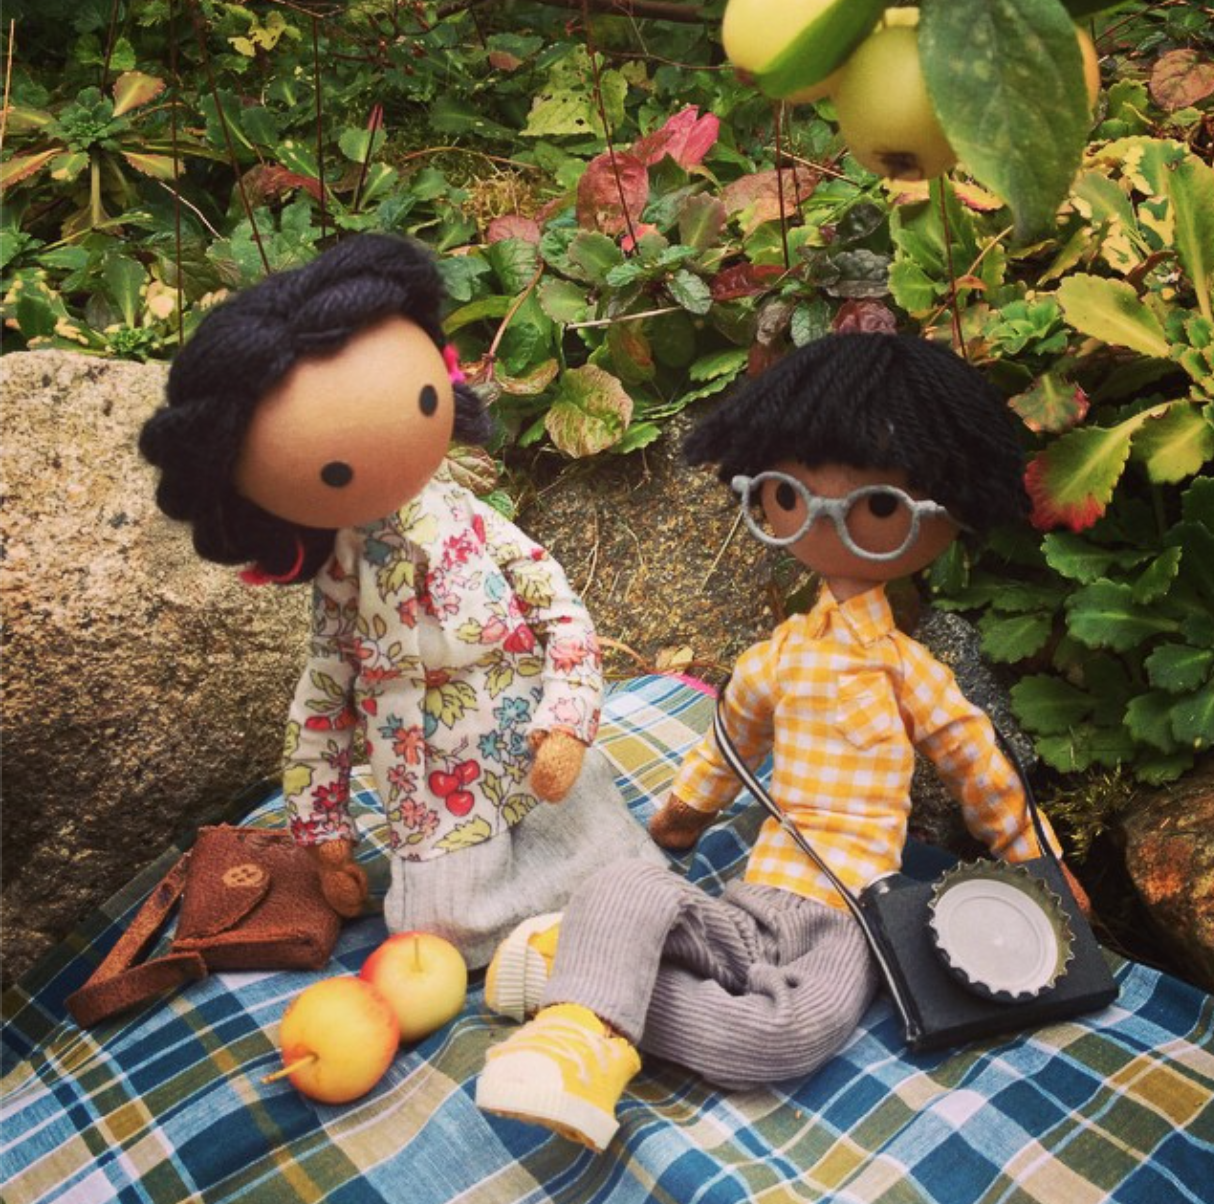 Having an apple picnic in the fall